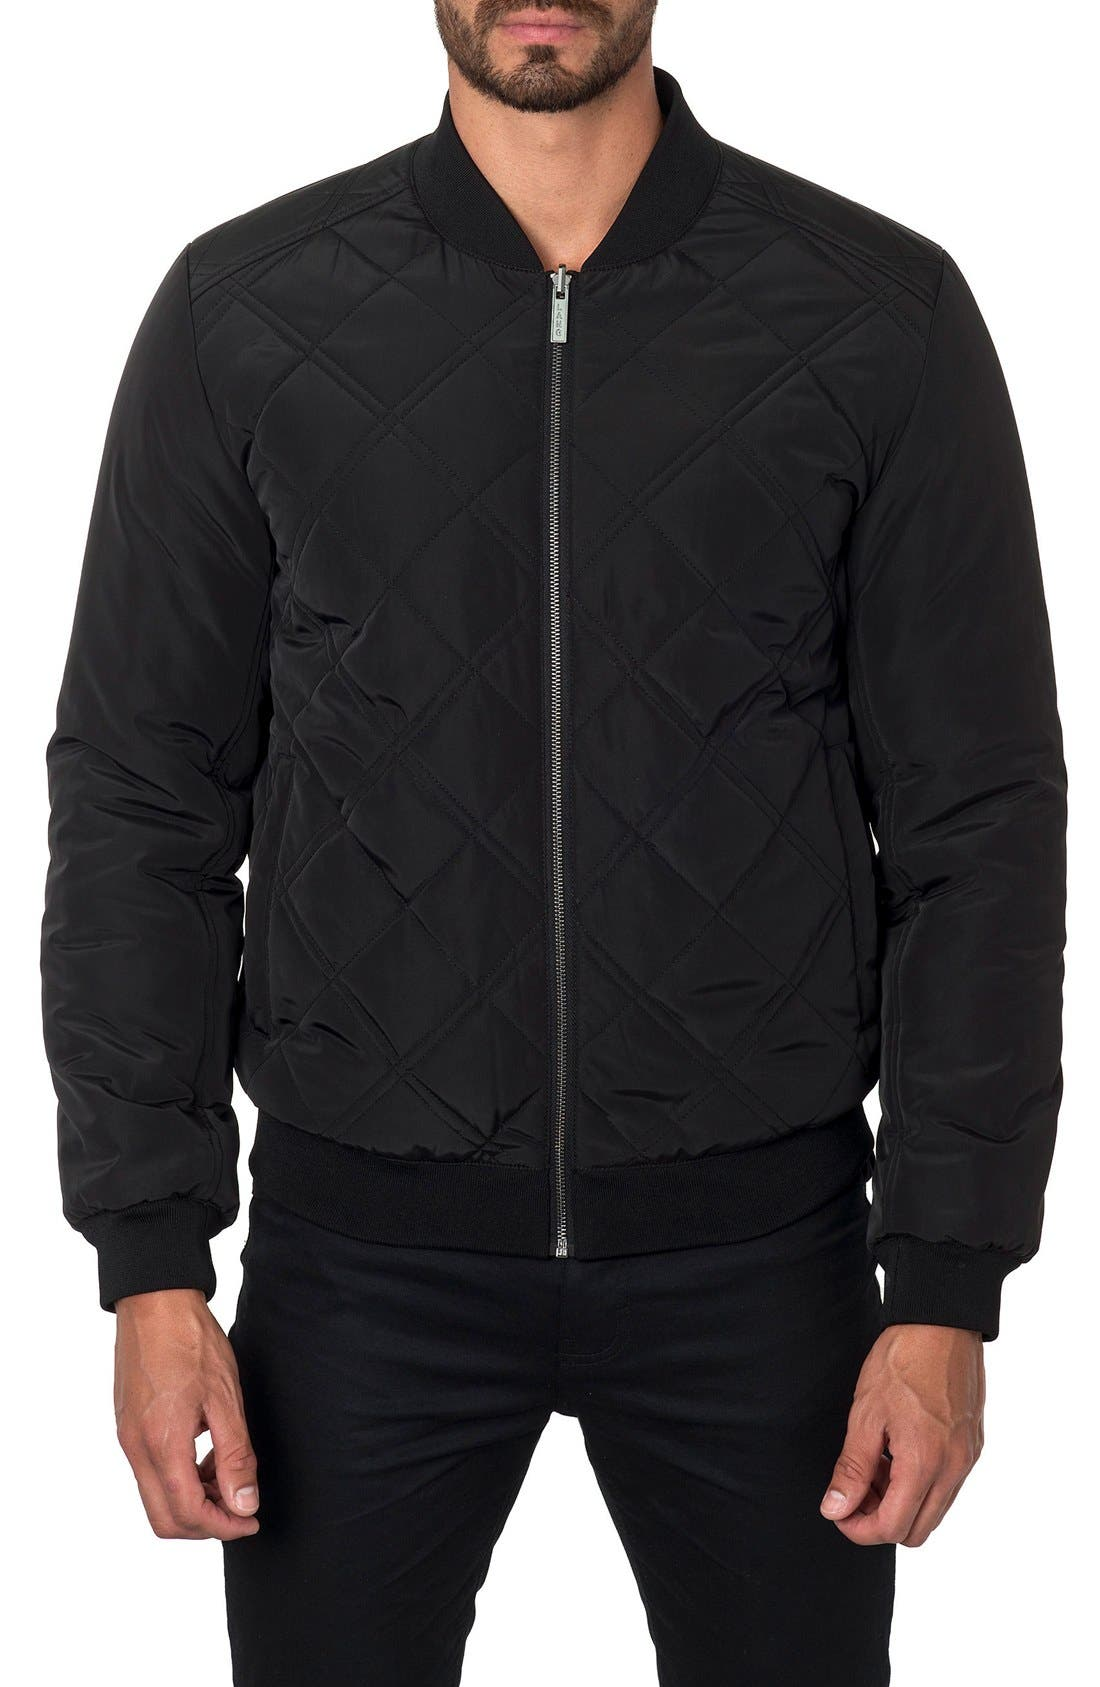 New York Reversible Bomber Jacket,                             Alternate thumbnail 3, color,                             Black Camo/ Black Quilted